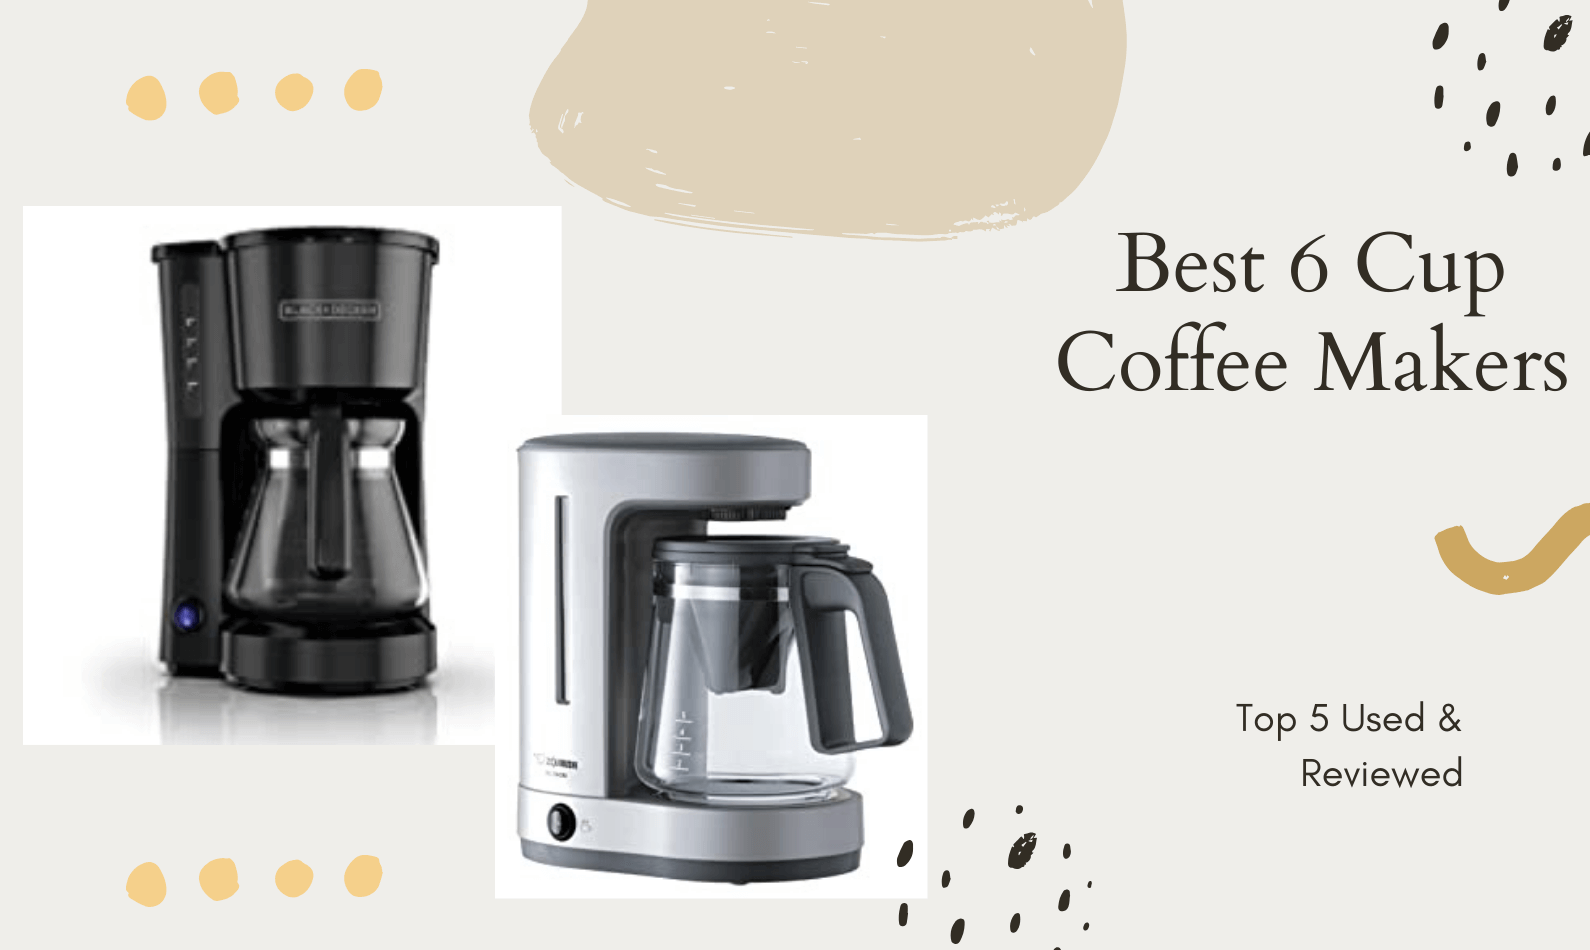 Best 6 Cup Coffee Makers